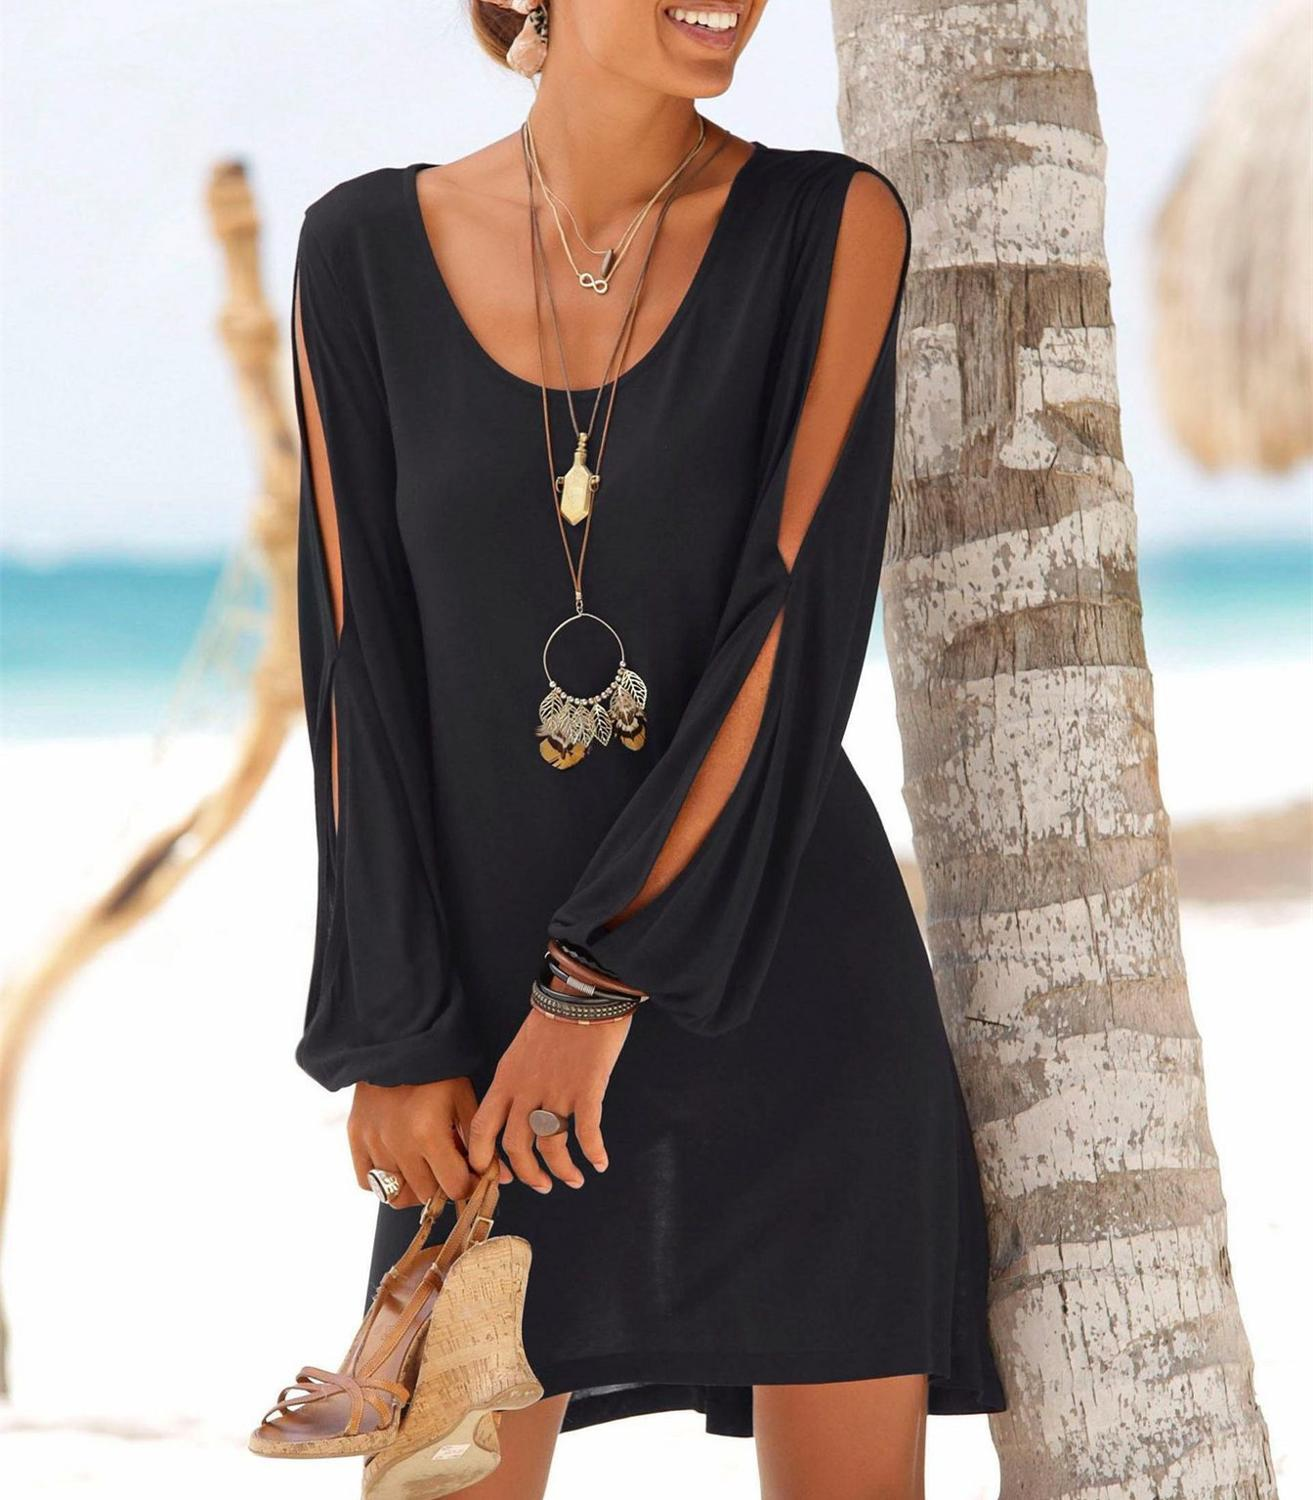 Five Color Black Casual Beach Dress Women O-Neck Hollow Out Sleeve Straight Solid Mini Dress Summer Clothes For Women 2019(China)